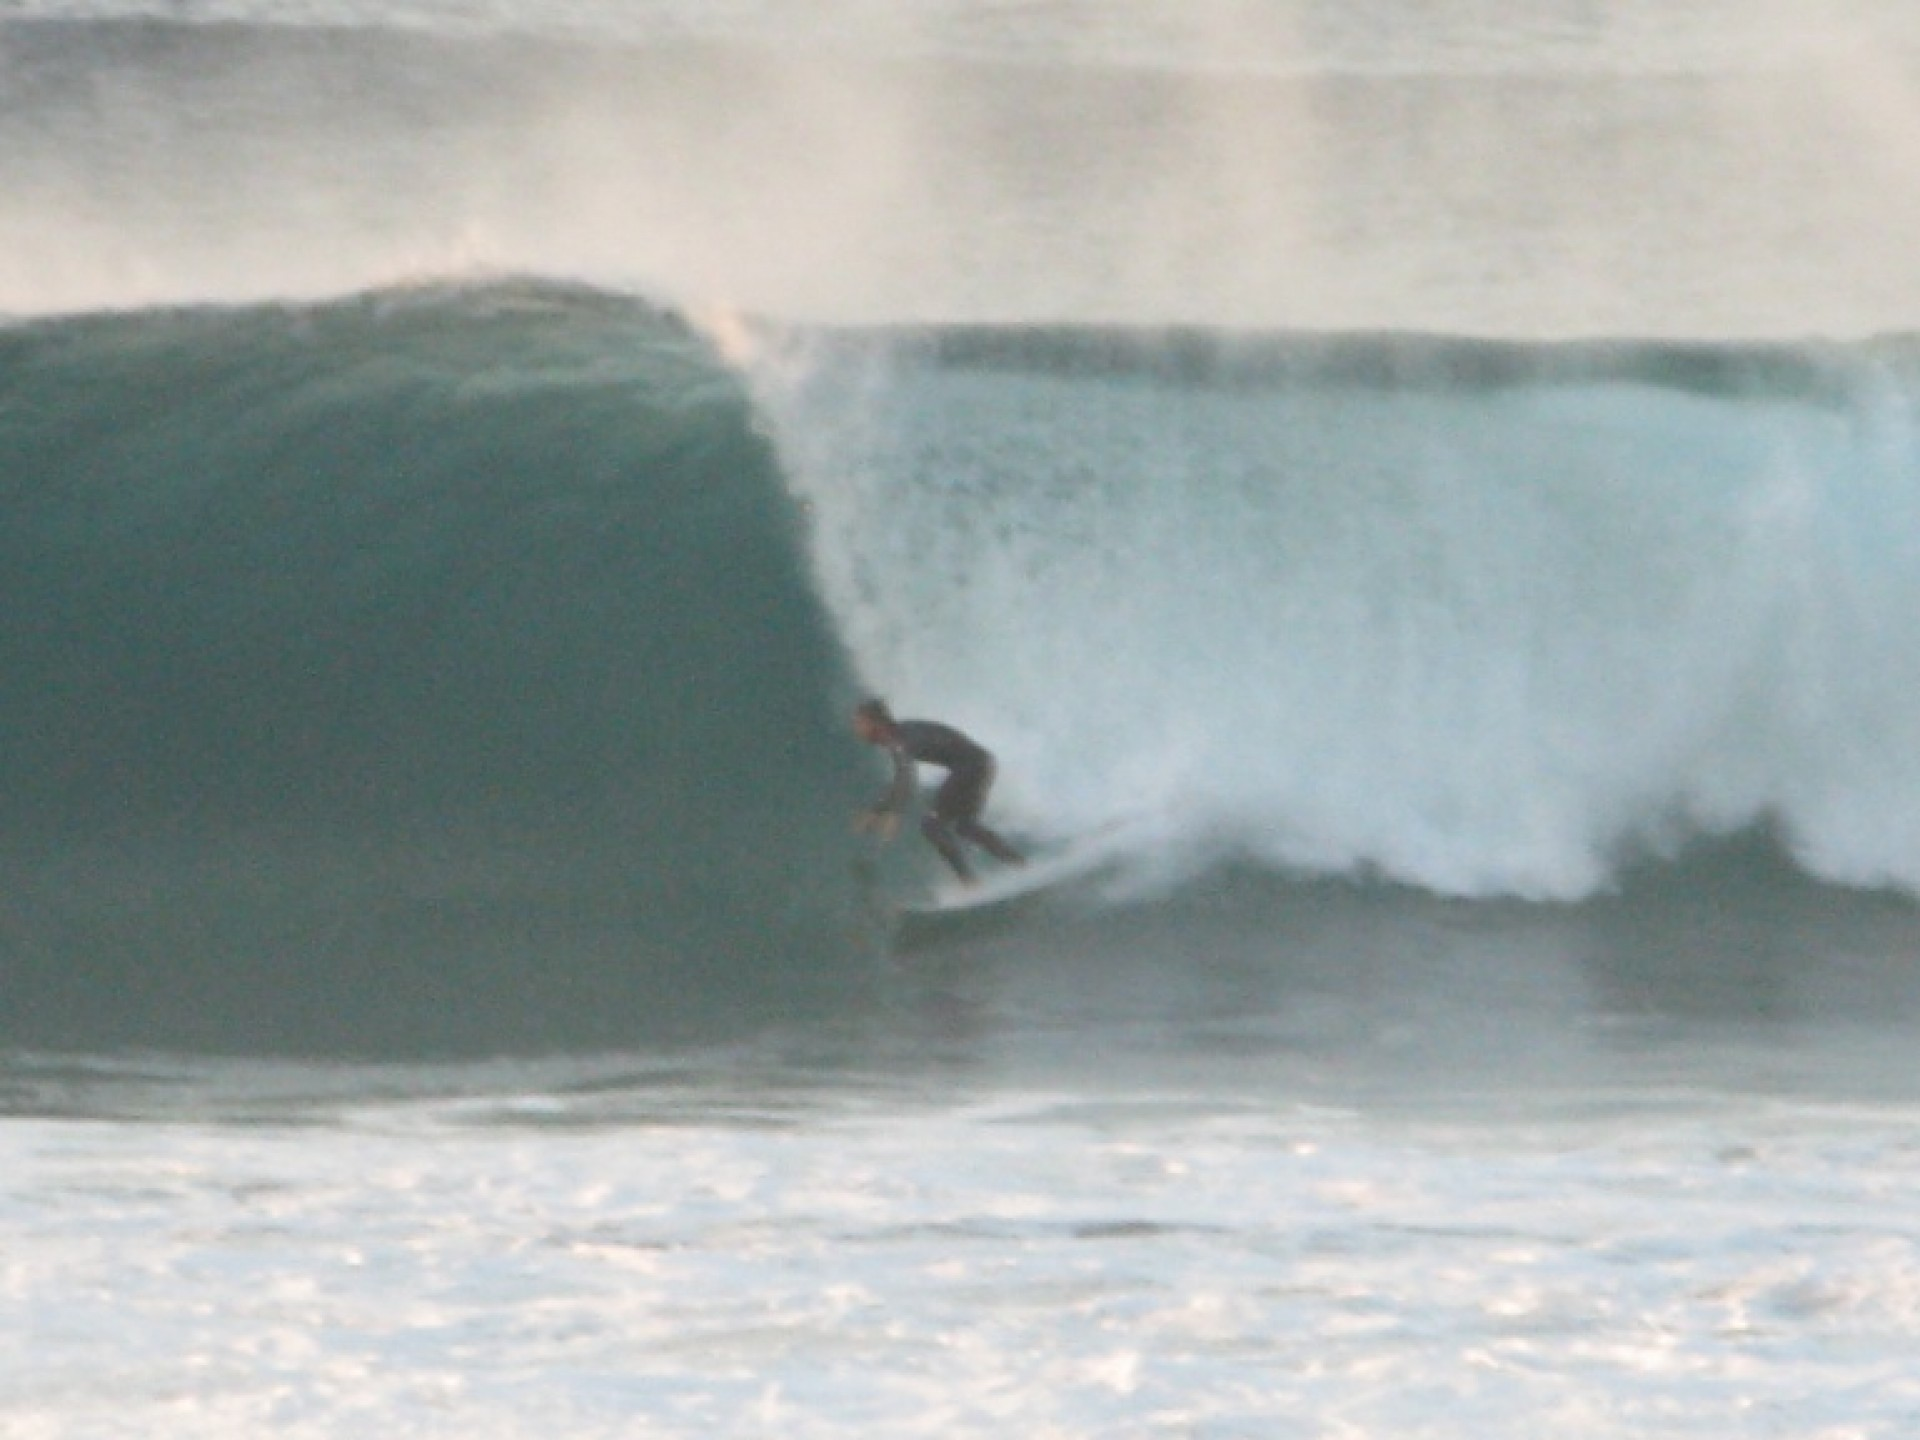 Tristan James Bransby's photo of Durban